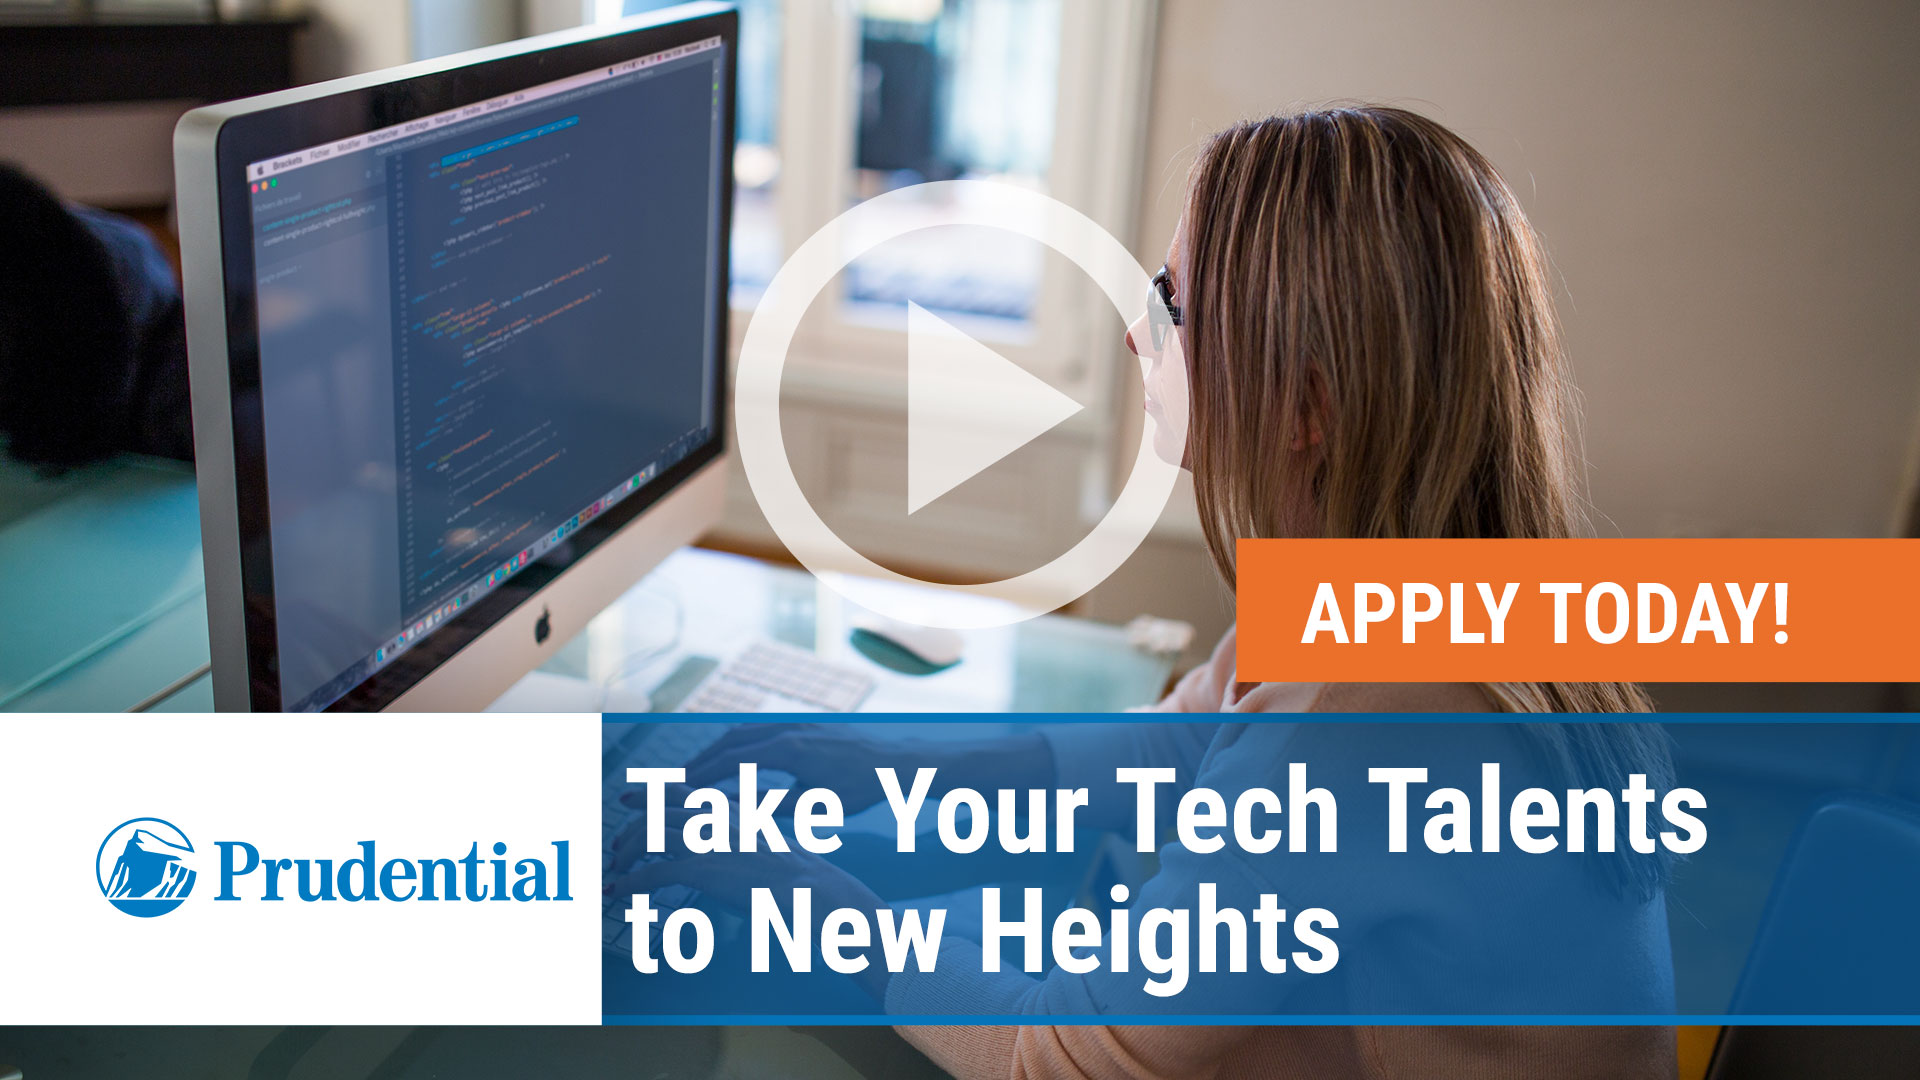 Watch our careers video for available job opening Take Your Tech Talents to New Heights in Roseland NJ, Moosic PA, Iselin NJ